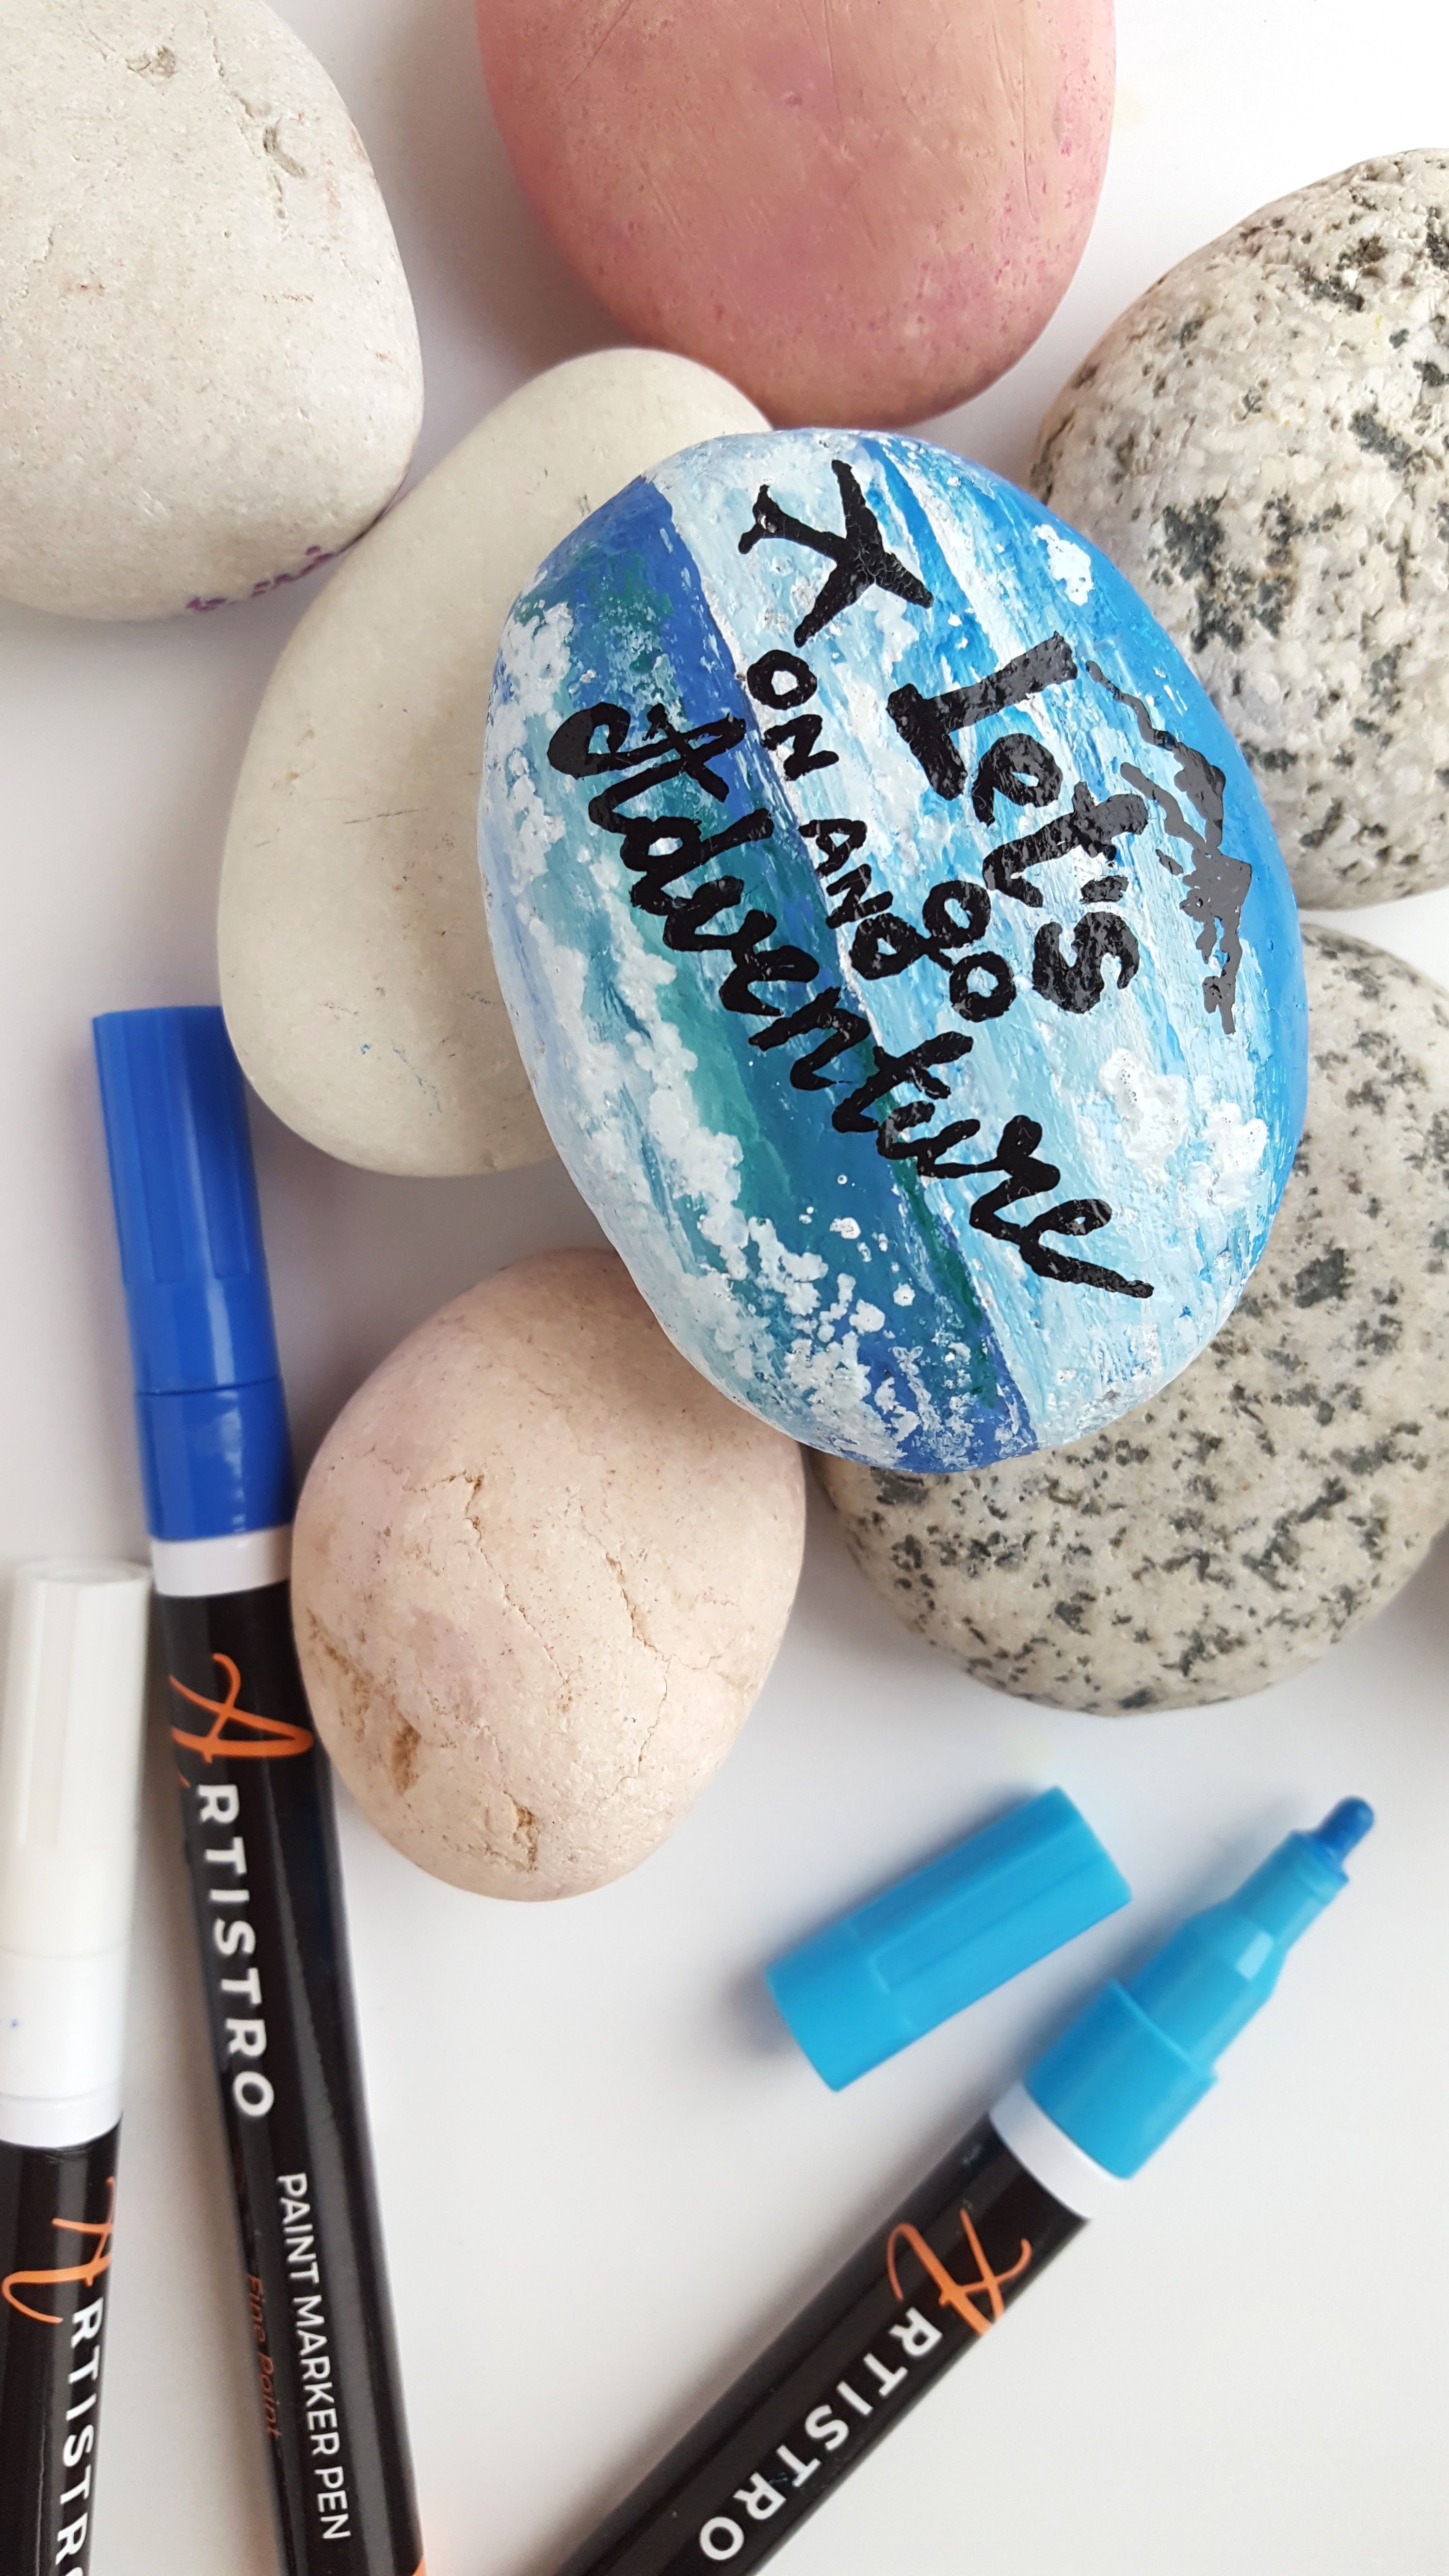 The Best Rock Painting Ideas For Beginners How To Start Rock Painting Guides From Artistro Rock Painting Suppli Paint Pens For Rocks Paint Pens Painted Rocks